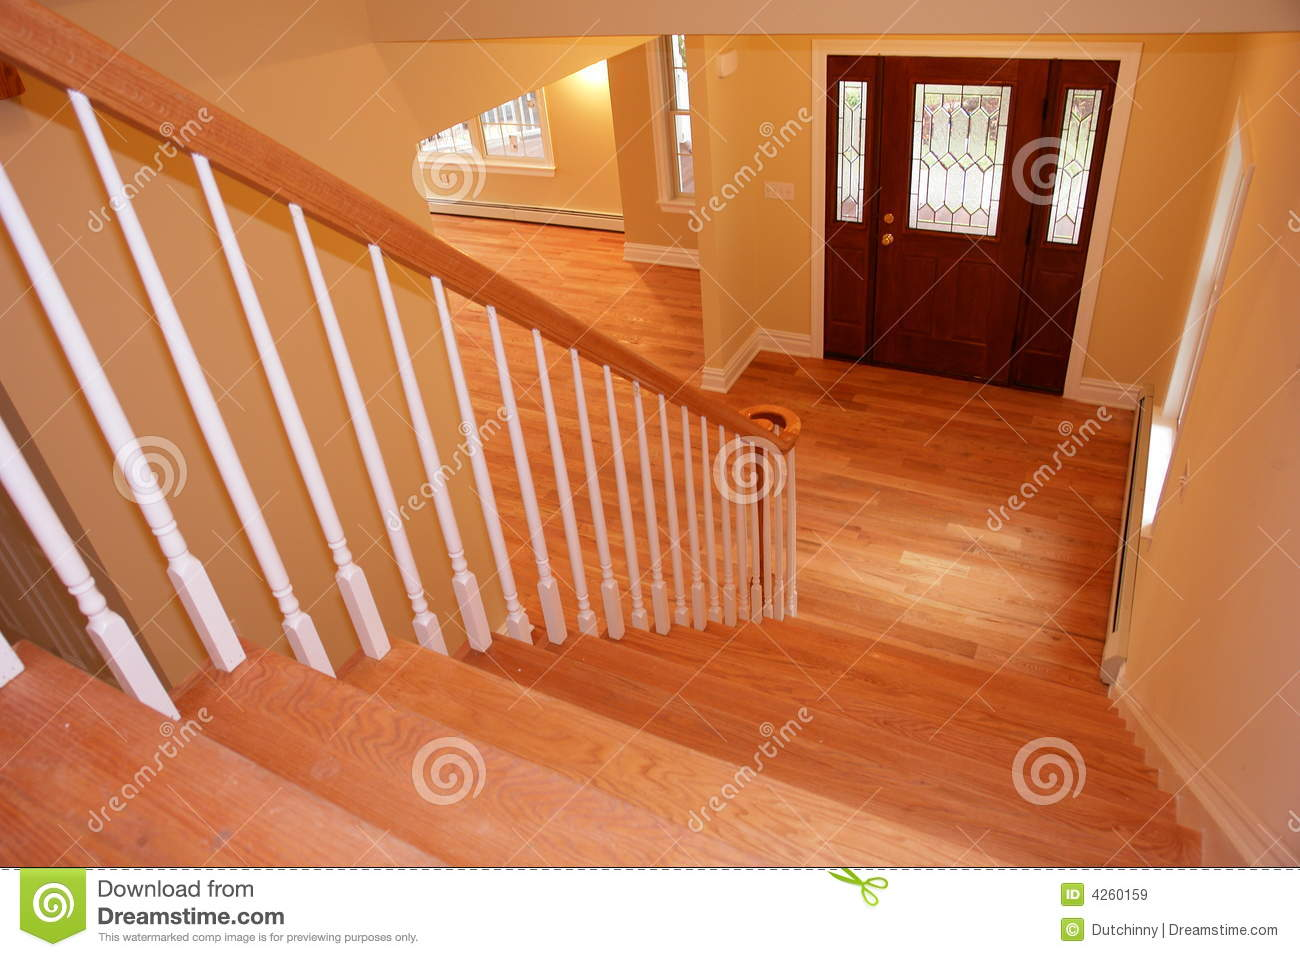 Foyer Clipart : Foyer and stairs royalty free stock images image